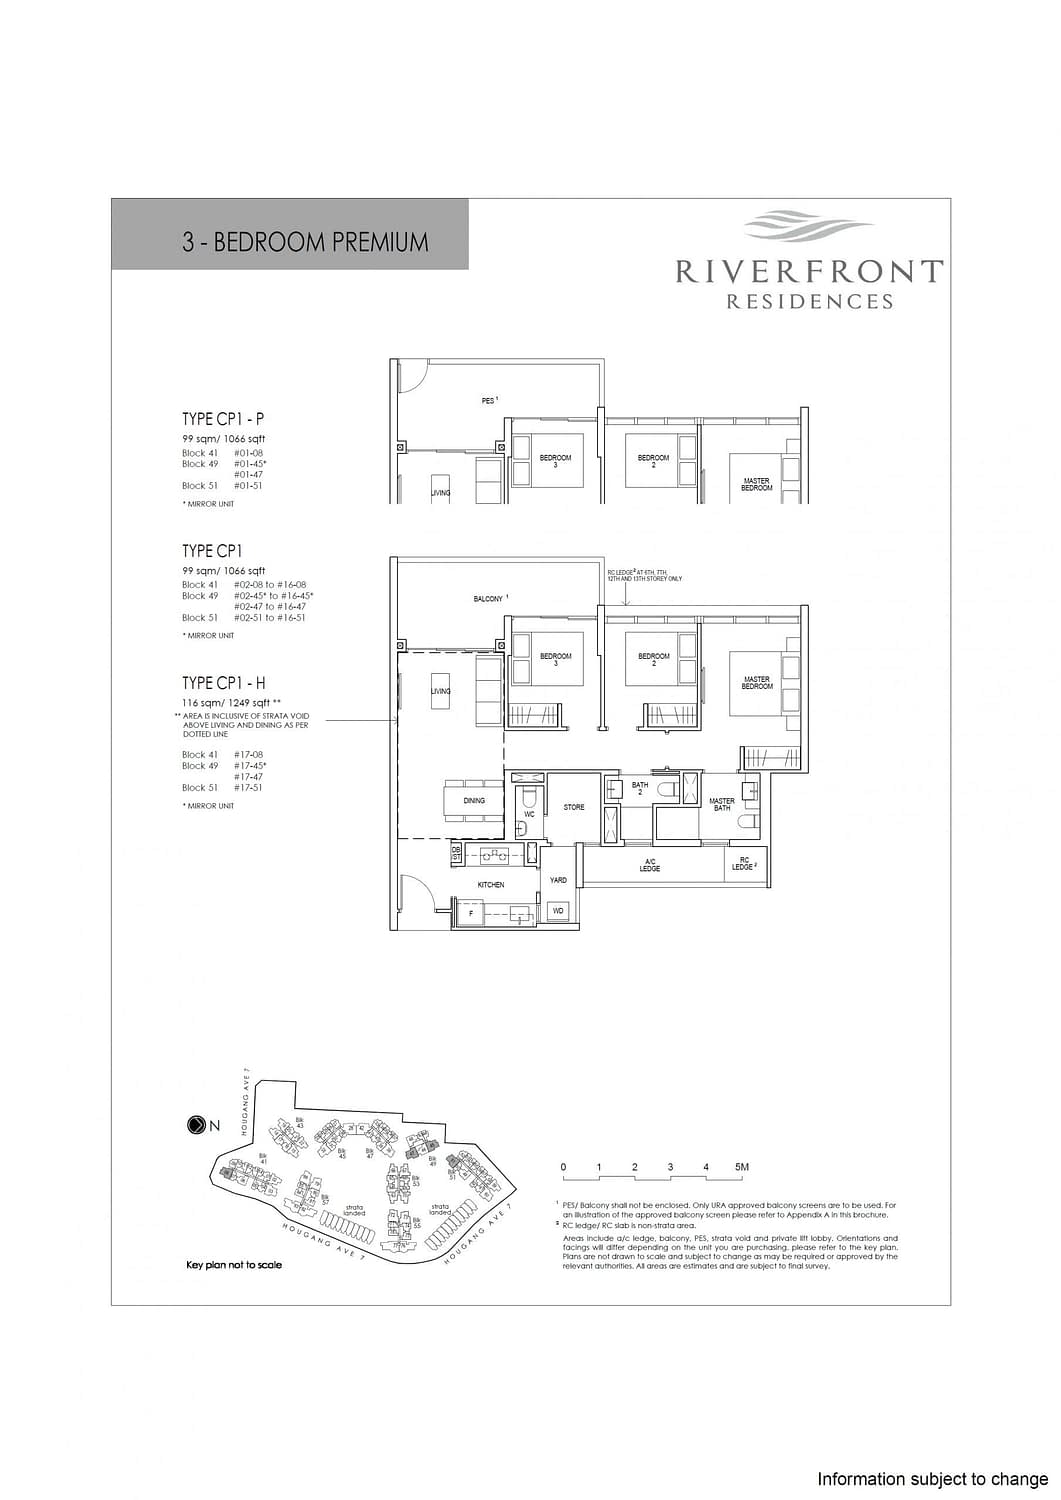 Riverfront Residences Riverfront Residences Floorplan CP1 scaled